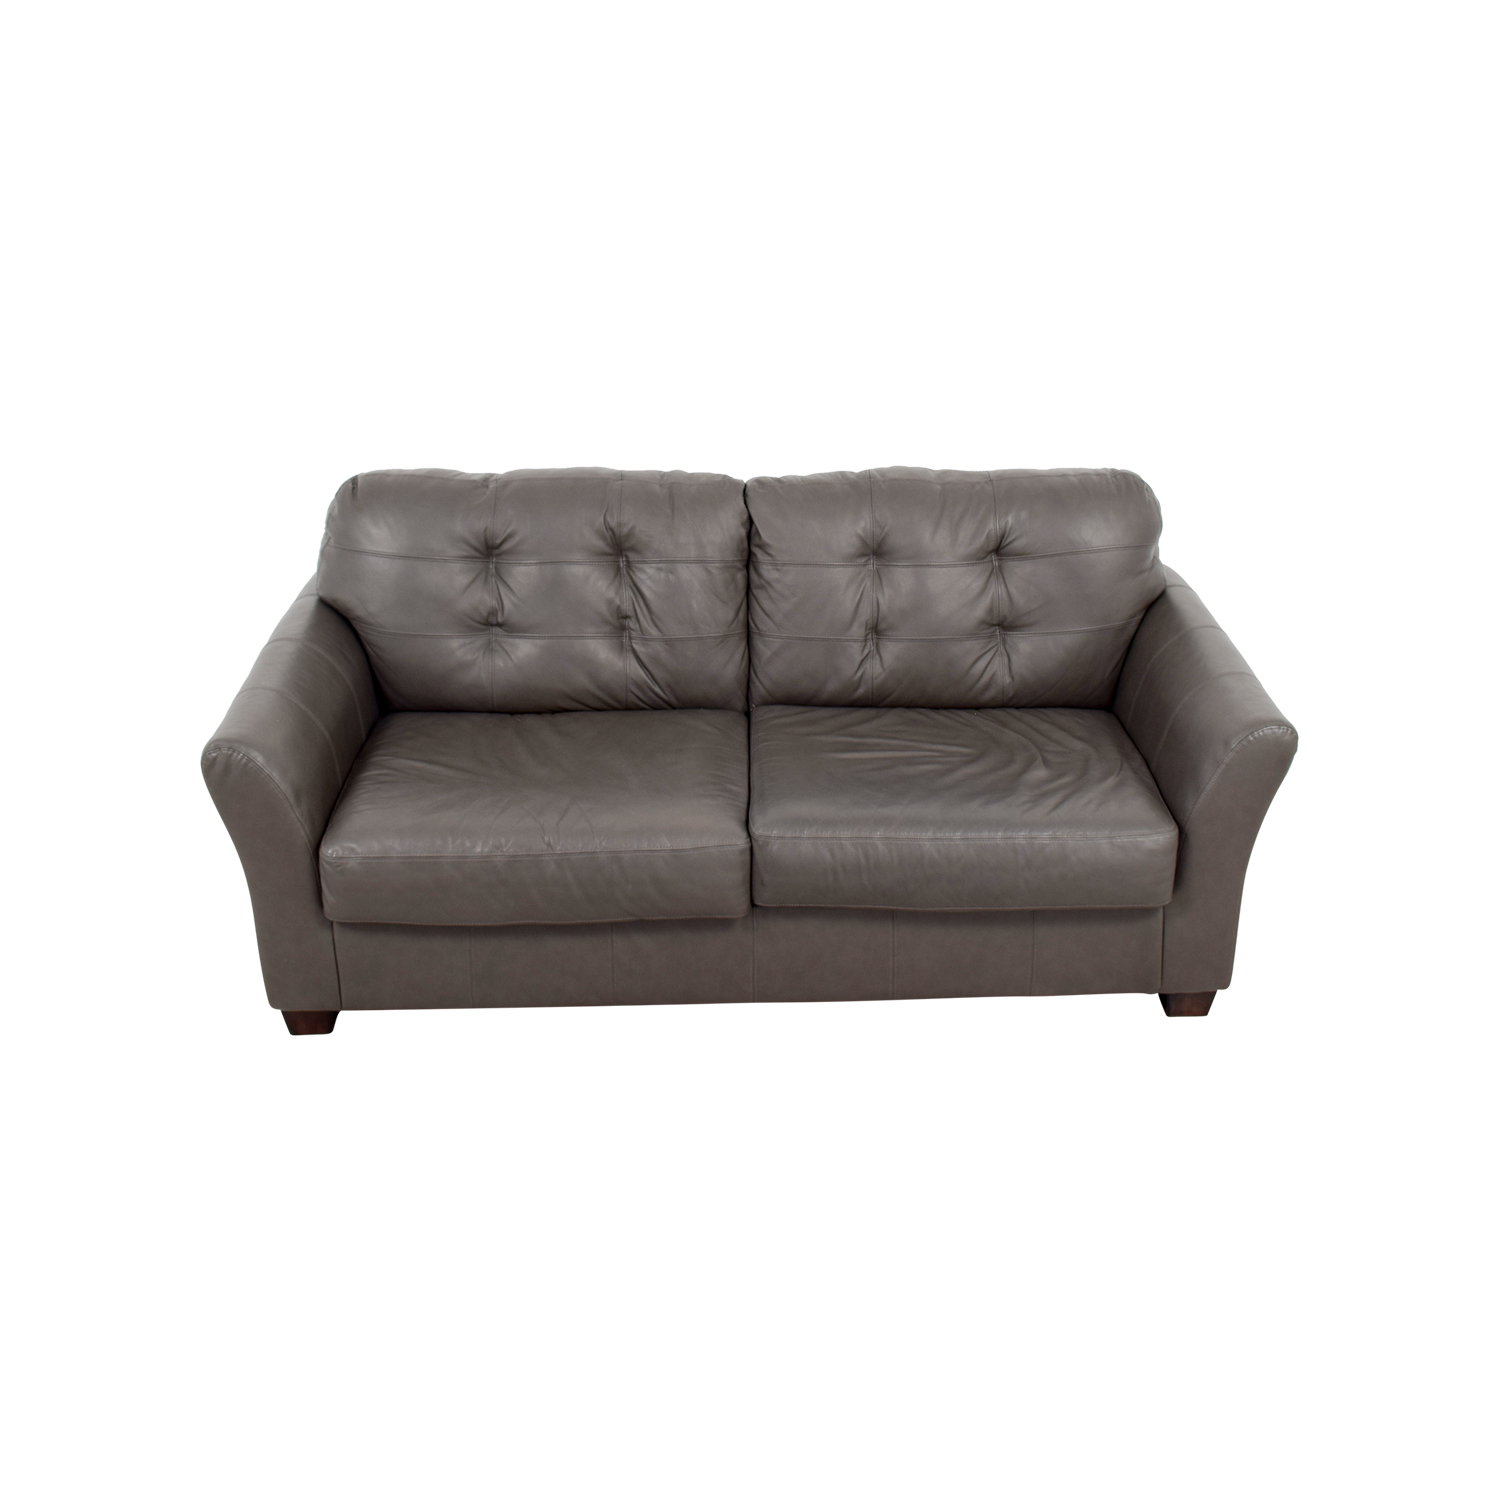 66 furniture furniture gray tufted